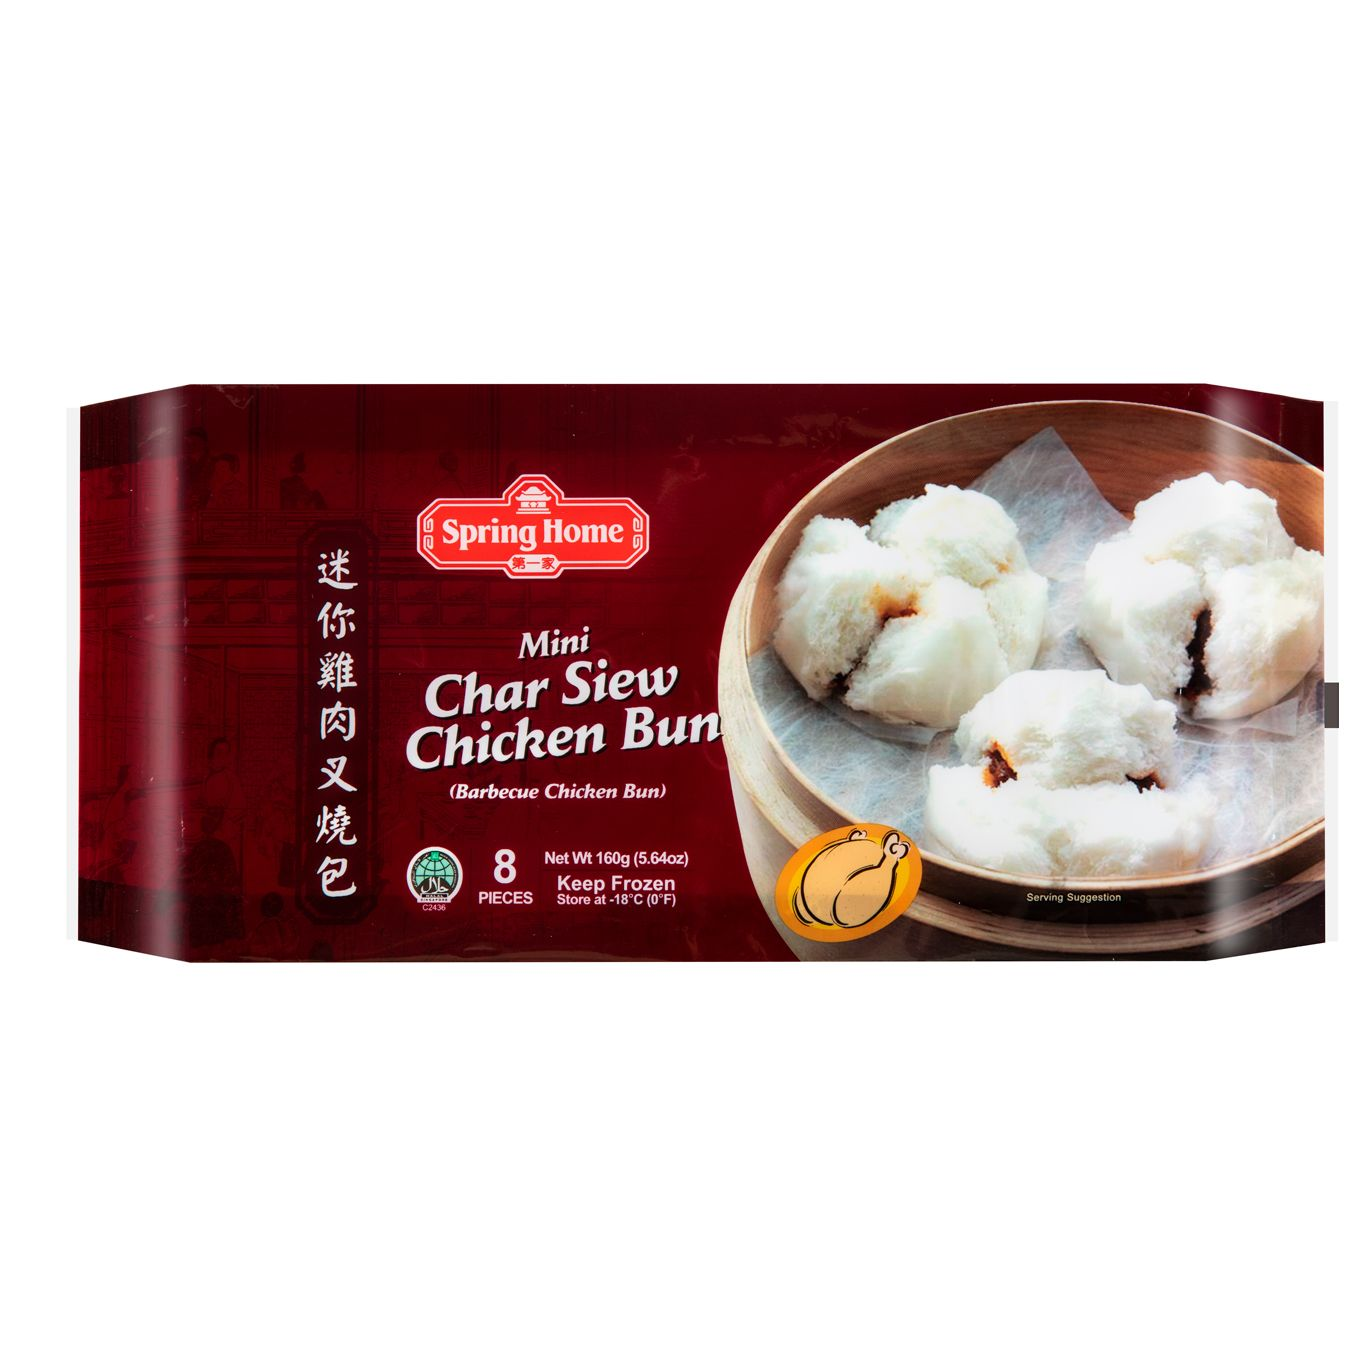 Spring Home Mini Char Slew Chicken Bun 8Pcs 160G